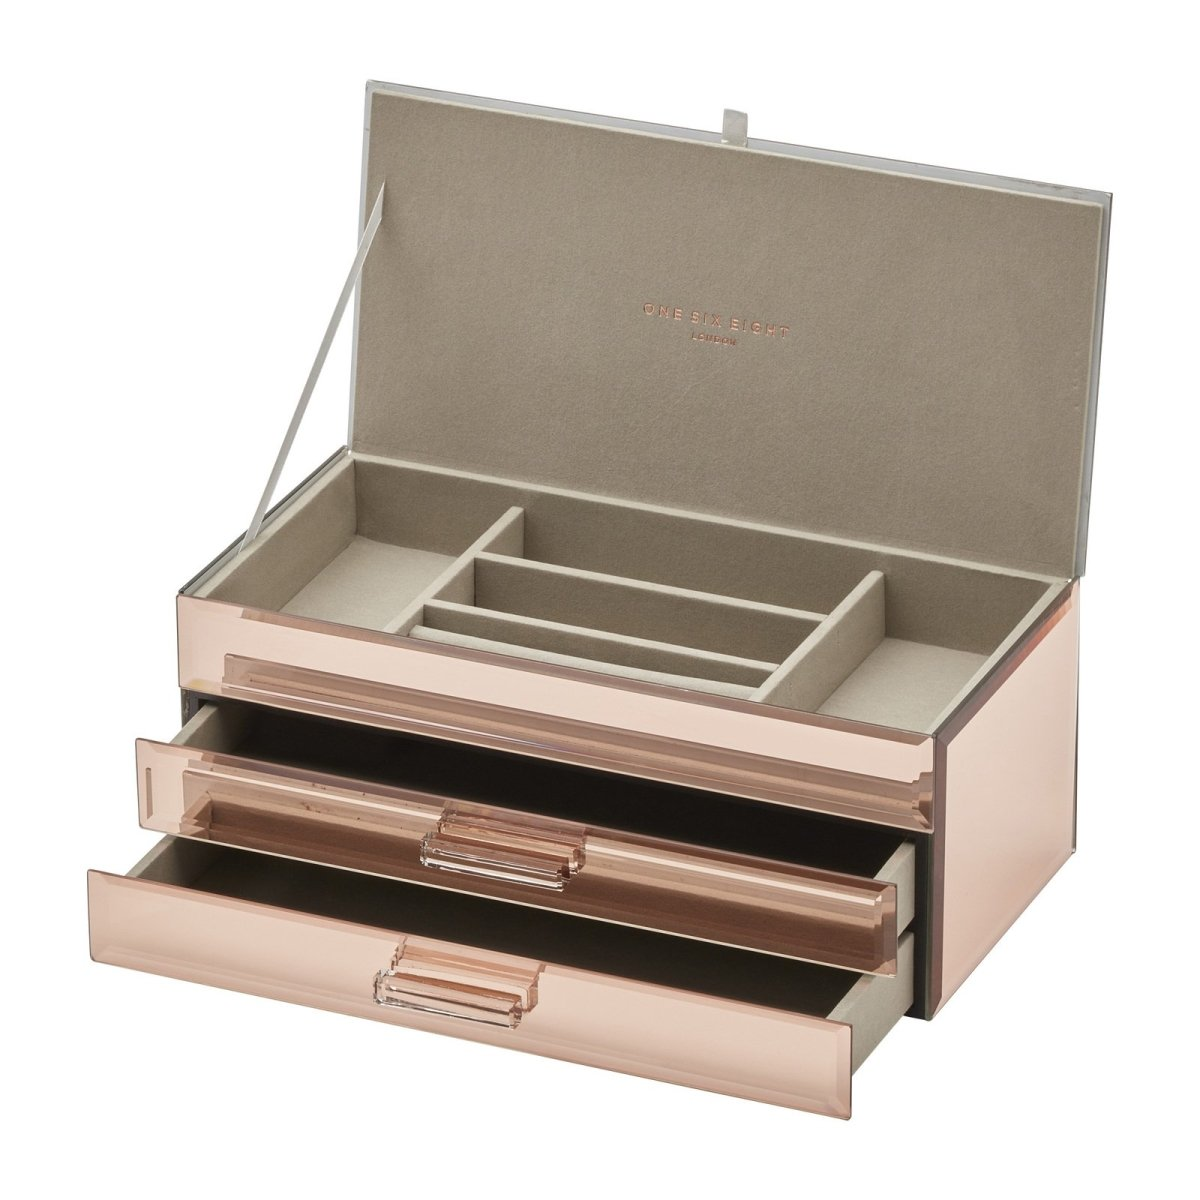 Gabriella Large Rose Gold Jewellery Box with Drawers - Minimax